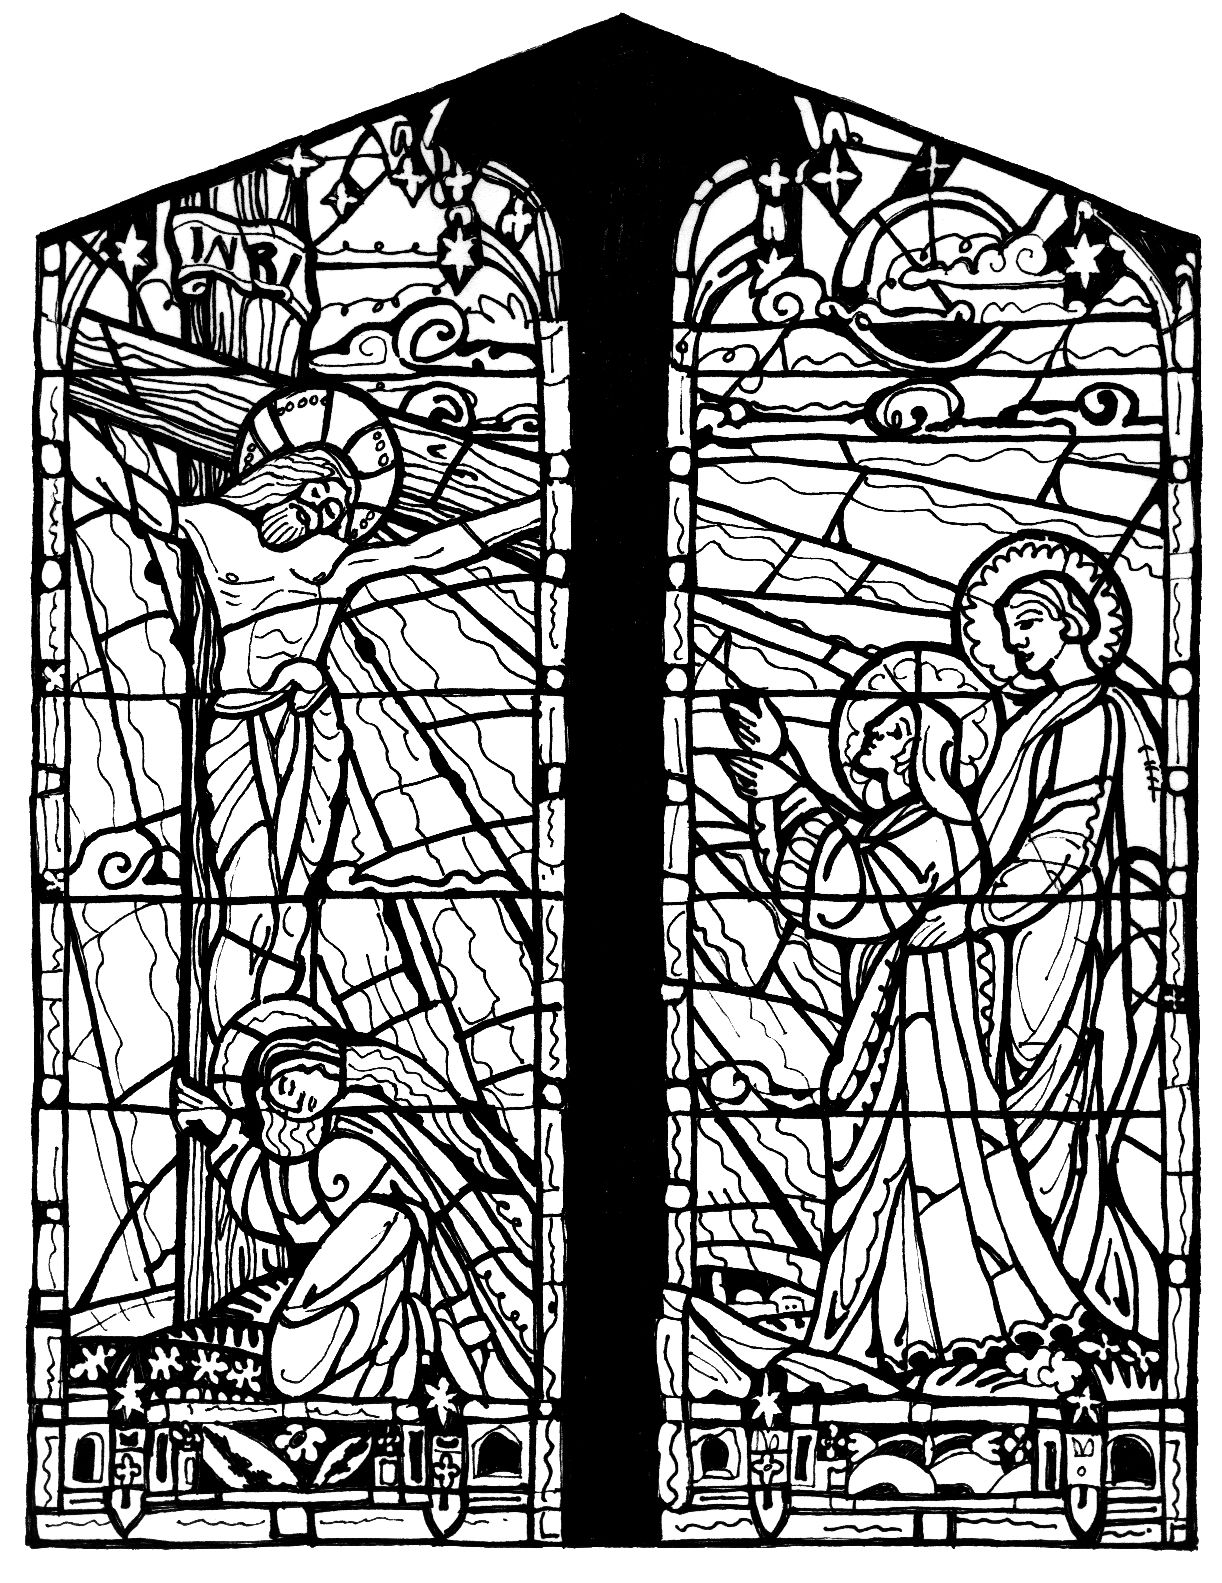 stained glass window coloring pages stained glass window drawing at getdrawings free download coloring pages glass stained window